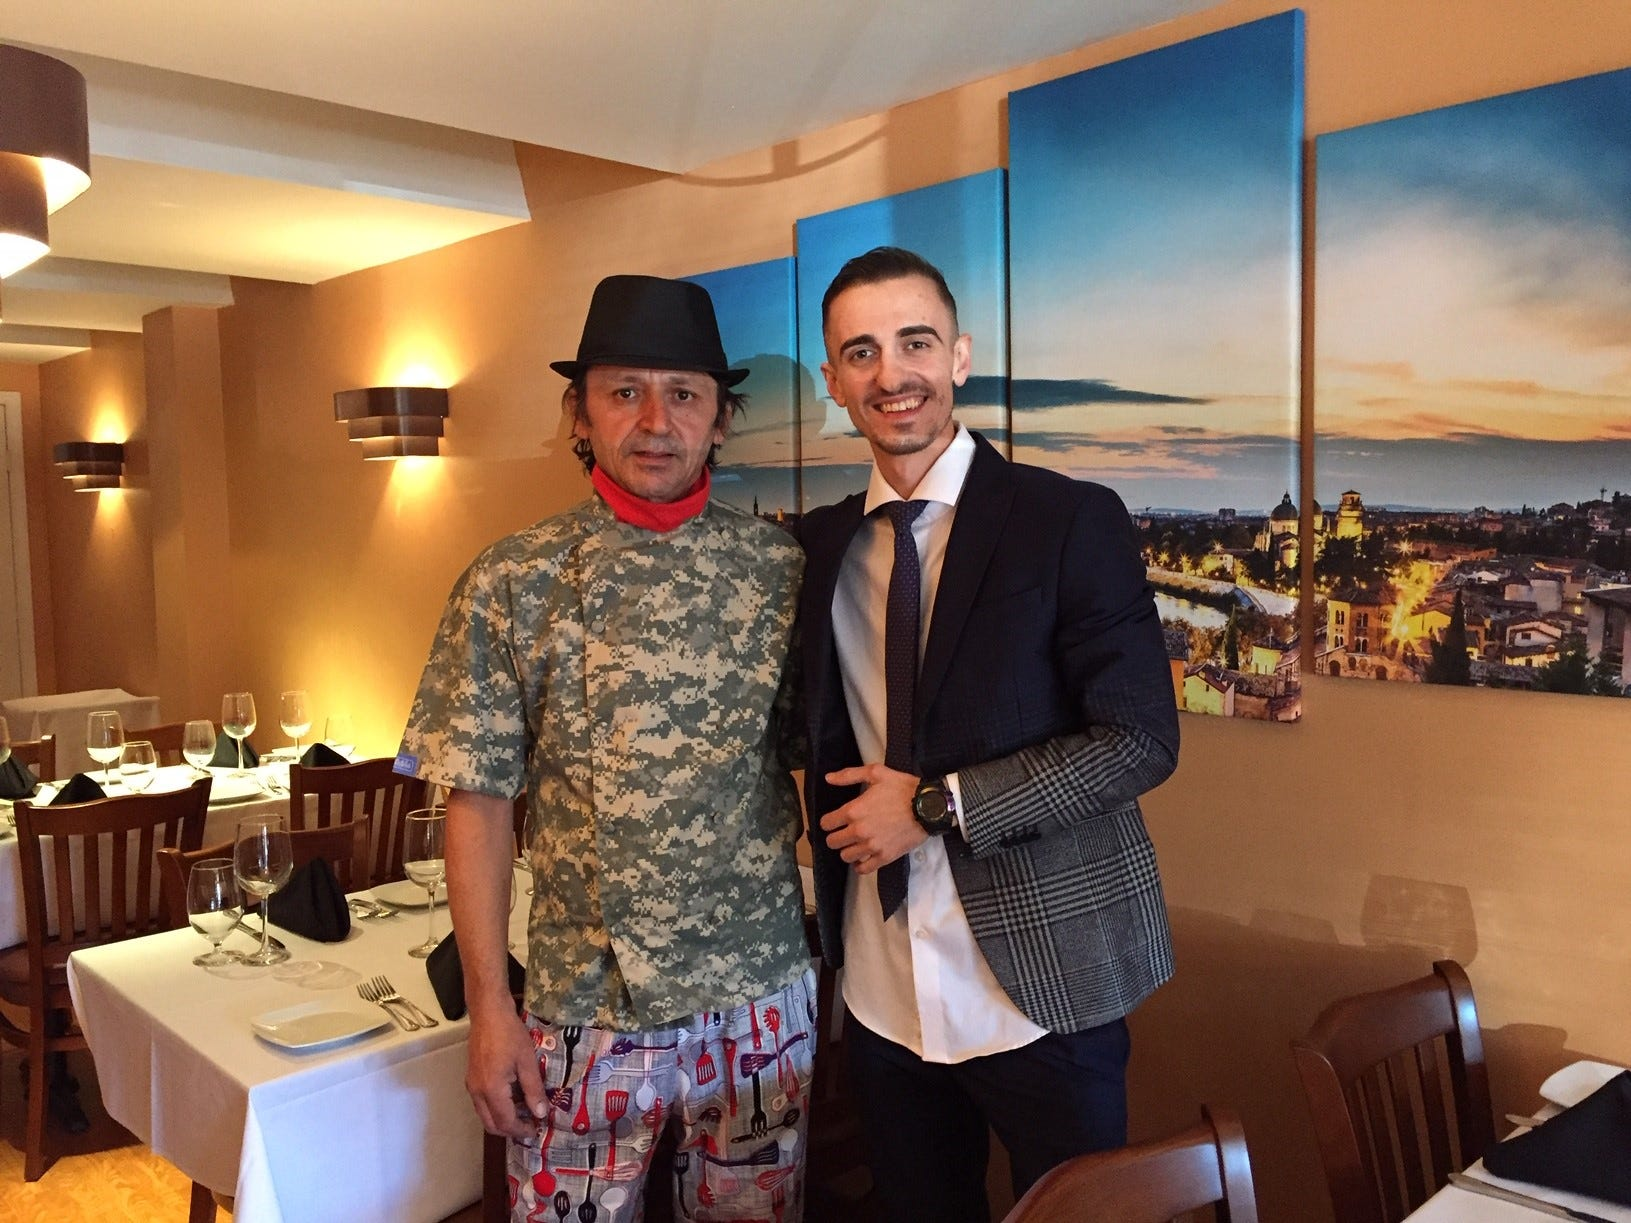 Chef Artur Haxhiu (left) and owner Endrit Bodi stand in the newly refurbished dining room of what is now Verona Ristorante Italiano in Haddonfield.